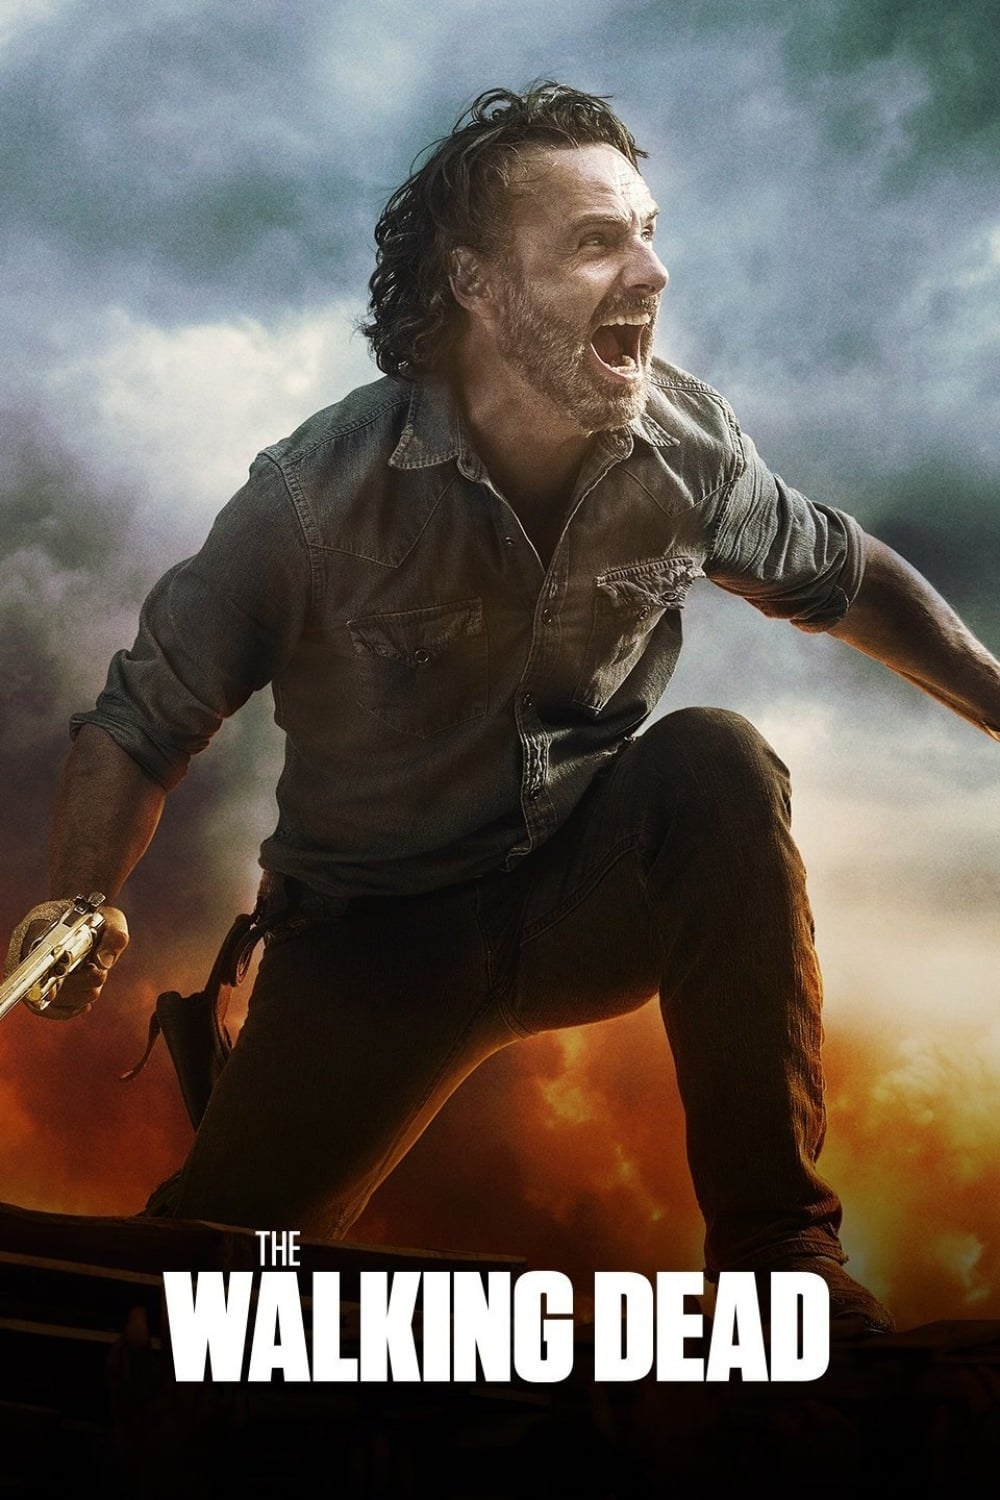 The Walking Dead – Todas as Temporadas Dublado / Legendado (2010)